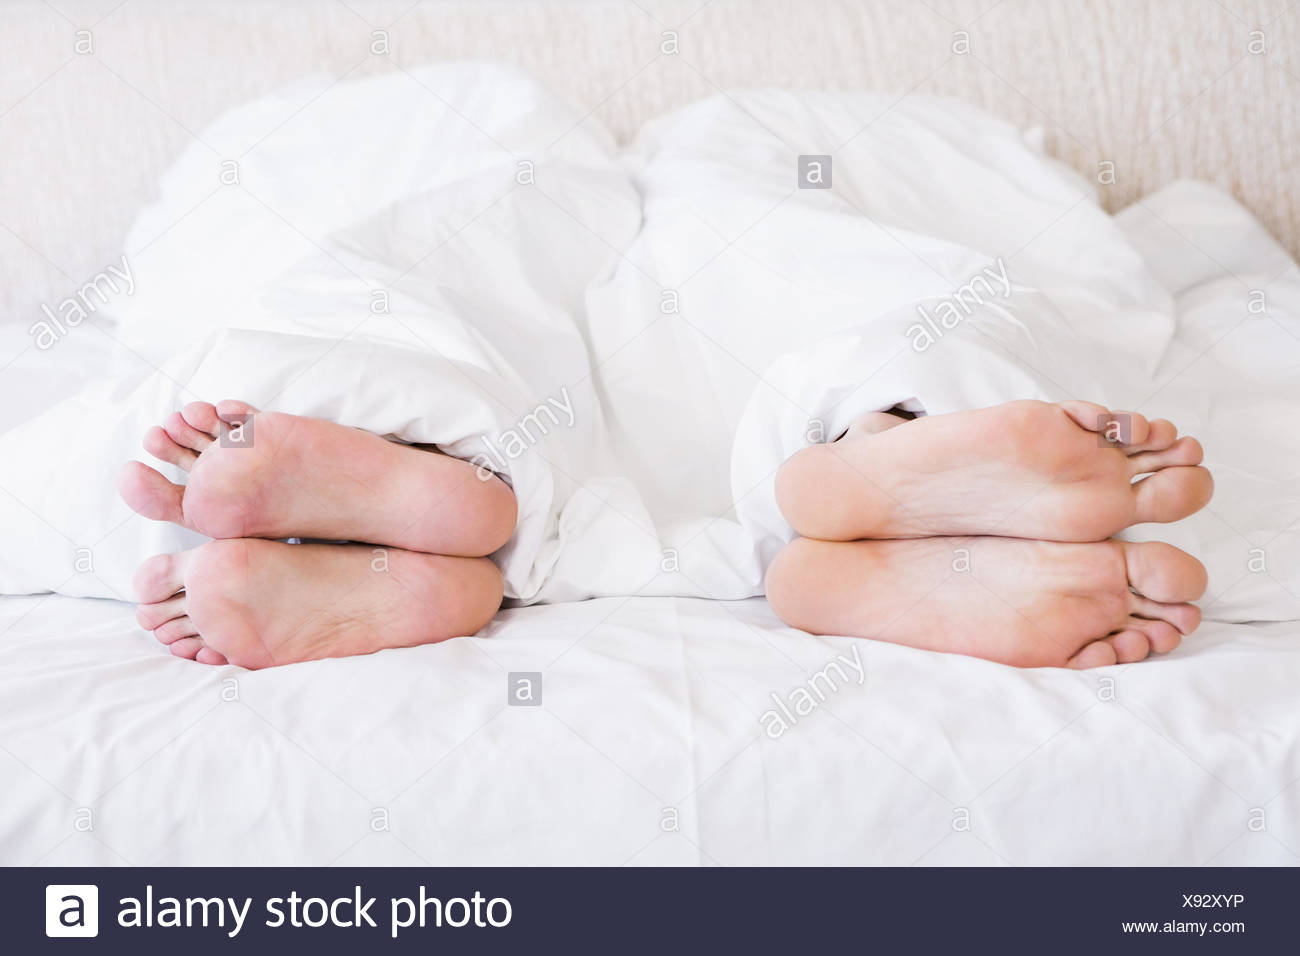 Bare feet of gay couple out from the blanket - Stock Image